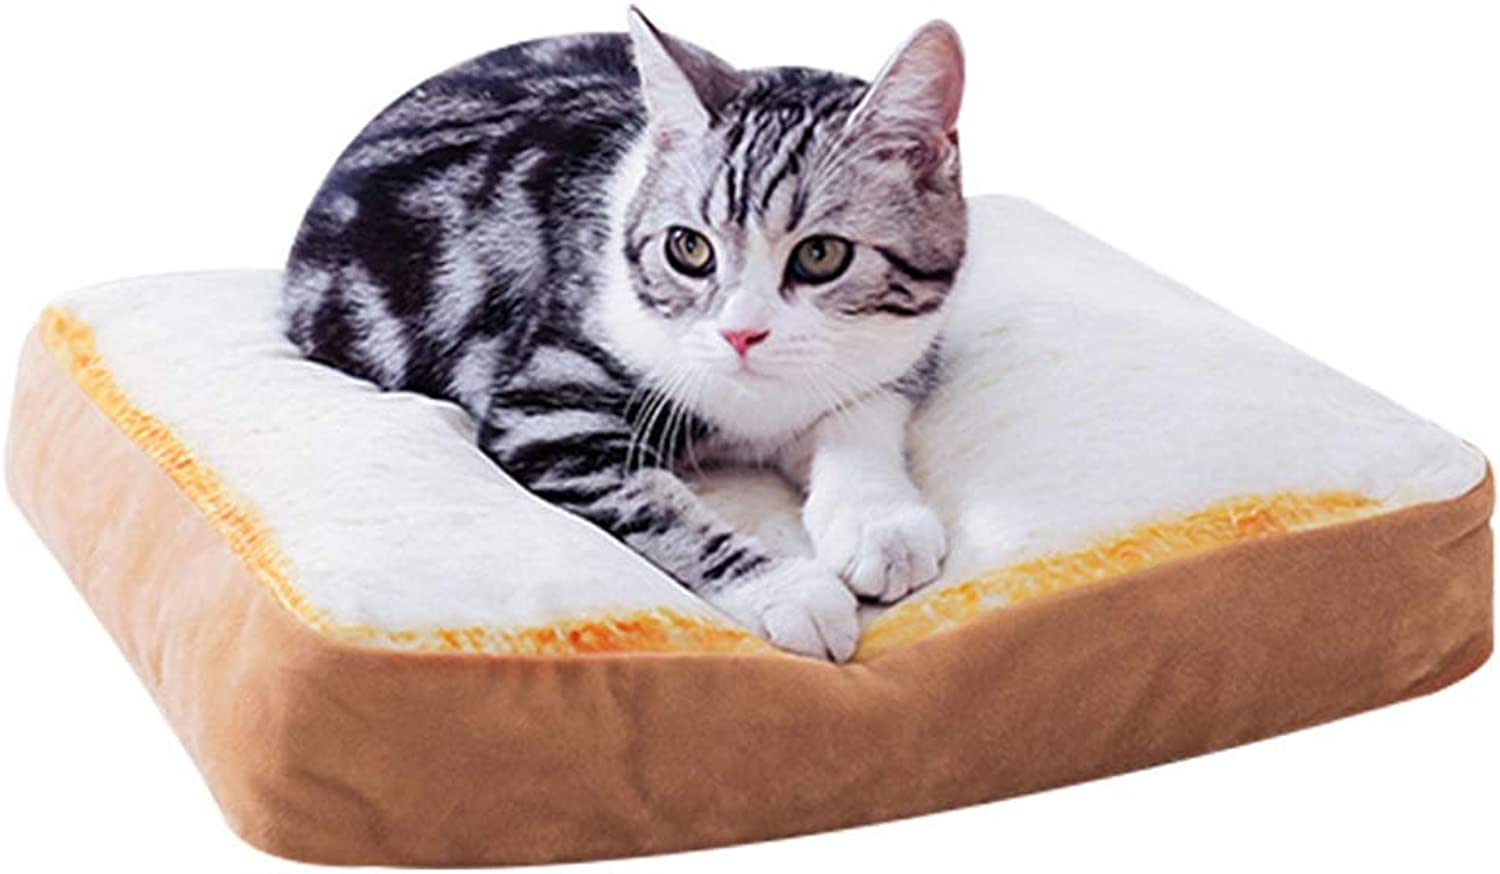 Alppq Plush Fabrics Kennel Cat Mat Slice Toast Cushion Bread Washable Pet Bed Bolster Four Seasons Universal Square Shape Pet Bed Plush Dog Bed Easy to Clean Comfort Bed Cat Dog Bed Luxury Soft